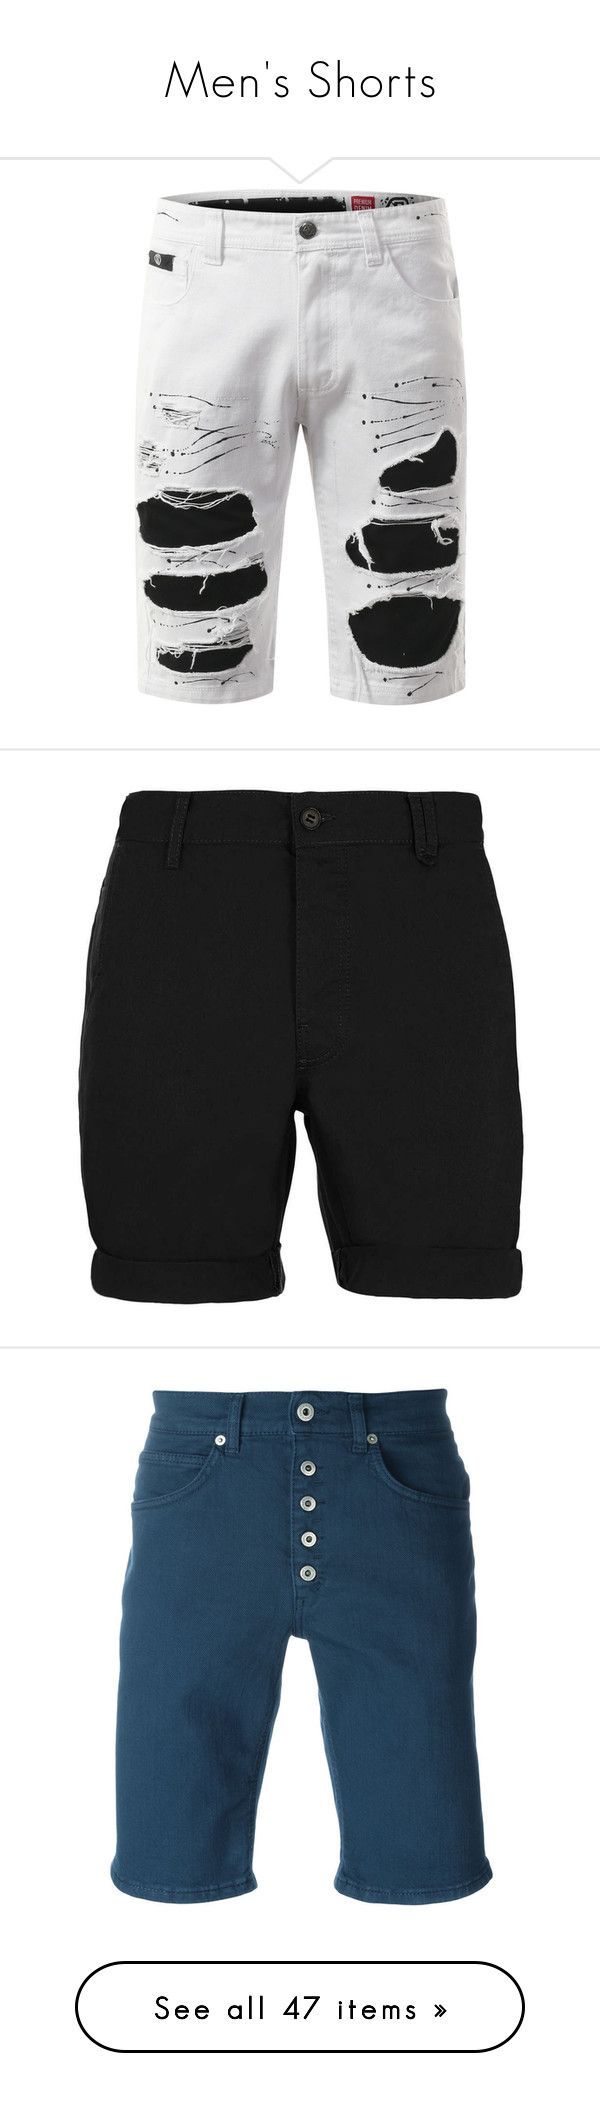 """""""Men's Shorts"""" by unholyvengeance ❤ liked on Polyvore featuring shorts, ripped jean shorts, destroyed denim shorts, short jean shorts, distressed jean shorts, jean shorts, bottoms, embellished shorts, men's fashion and men's clothing"""